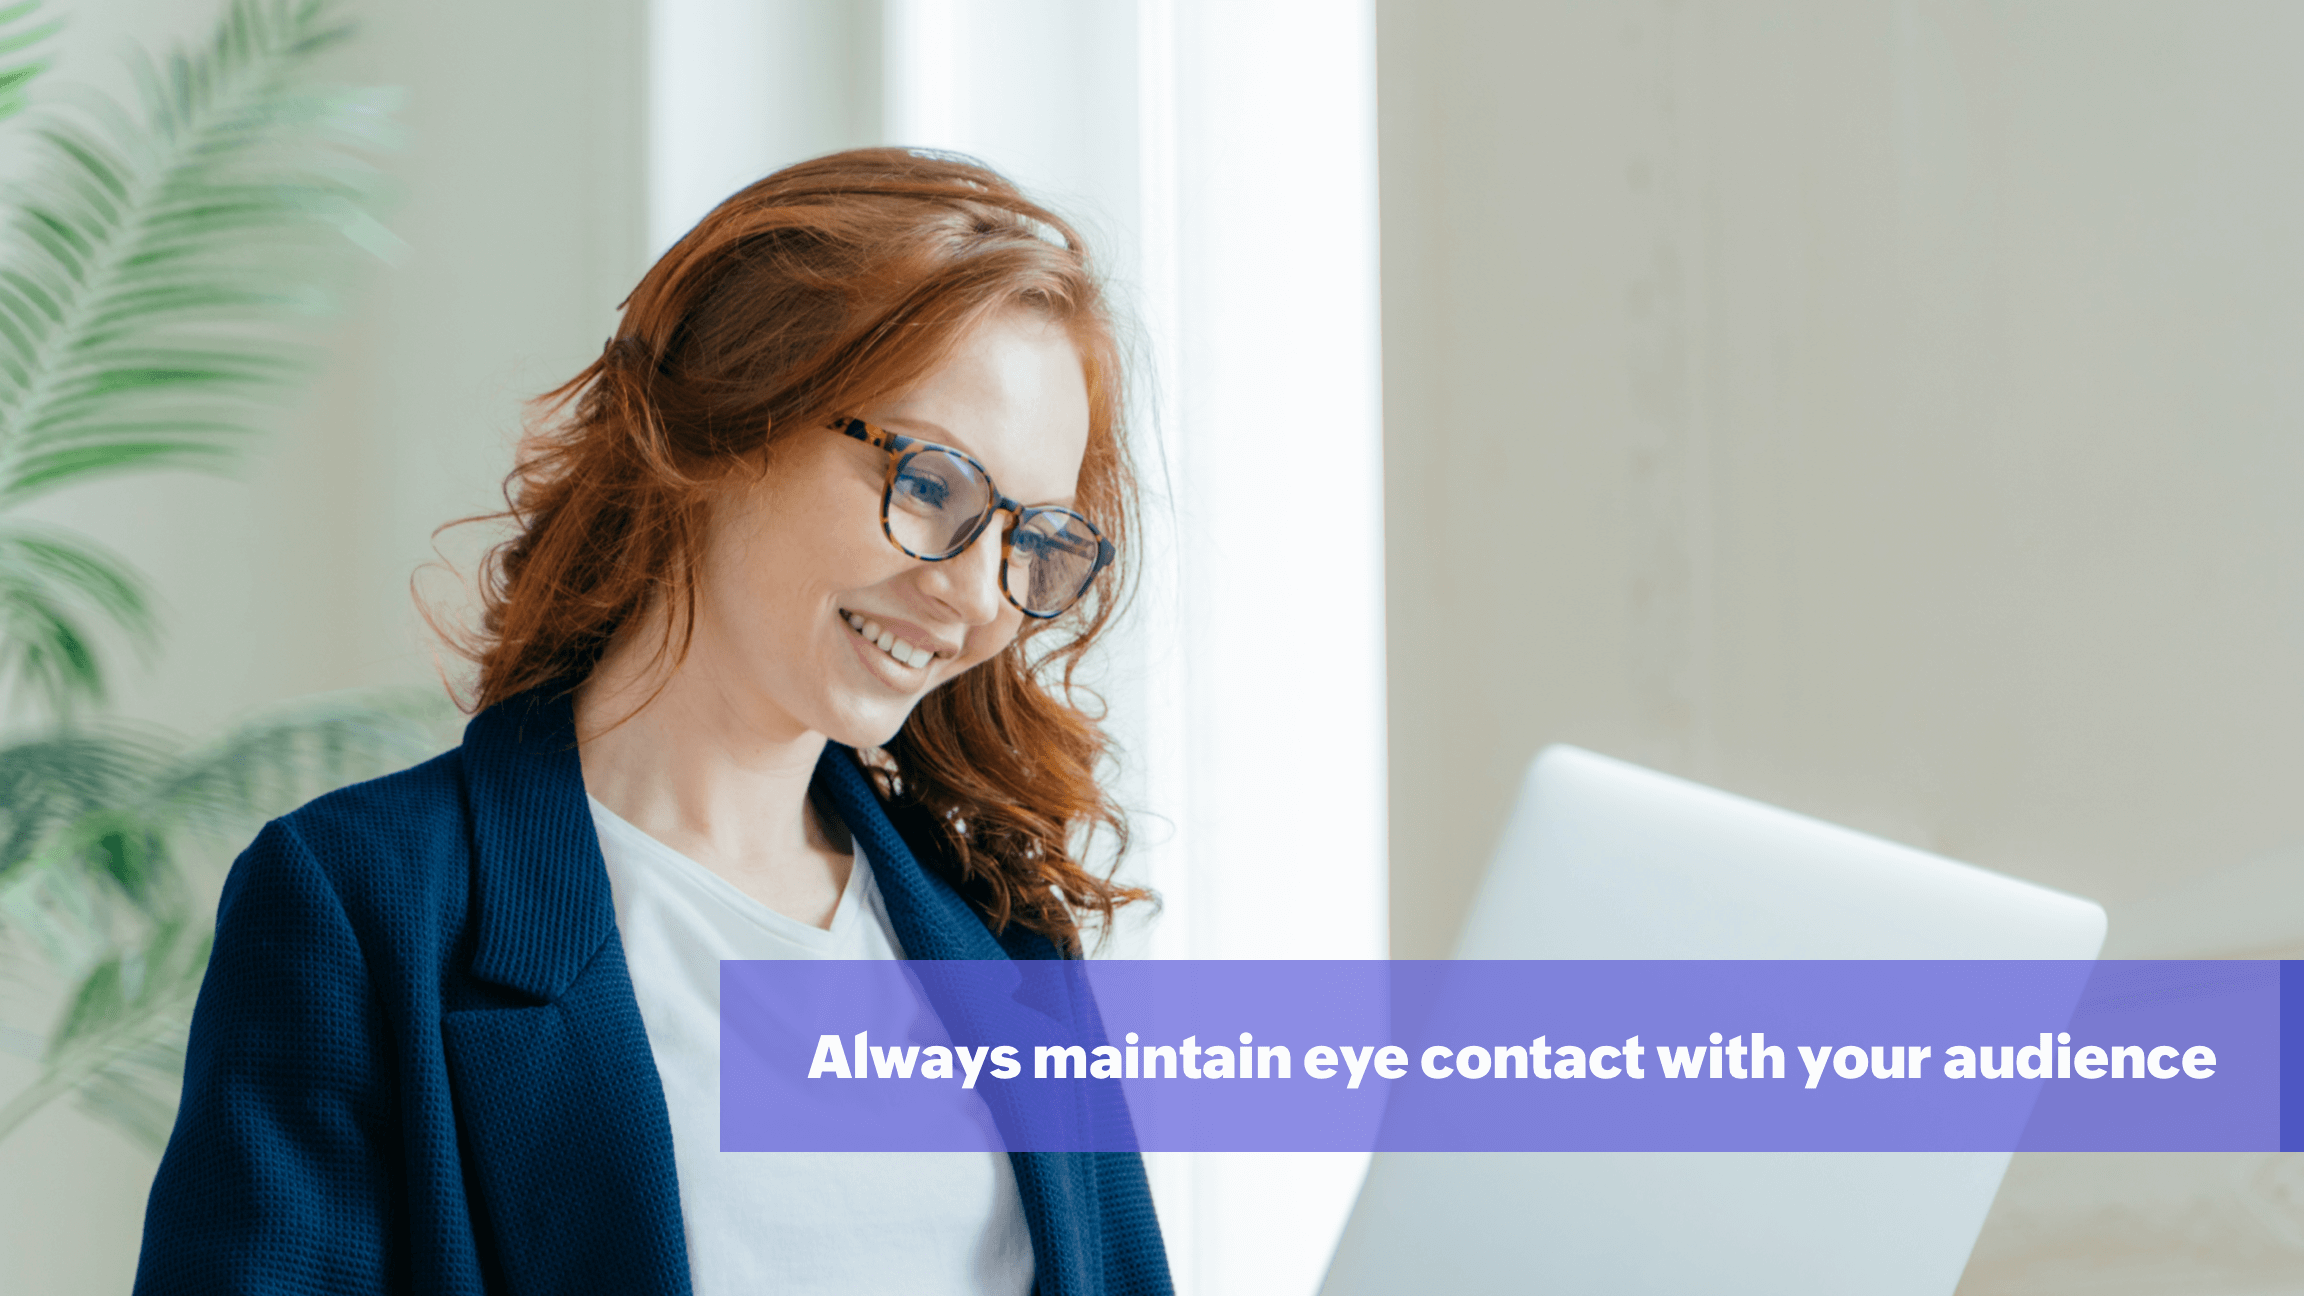 Maintain eye contact all times during presentation